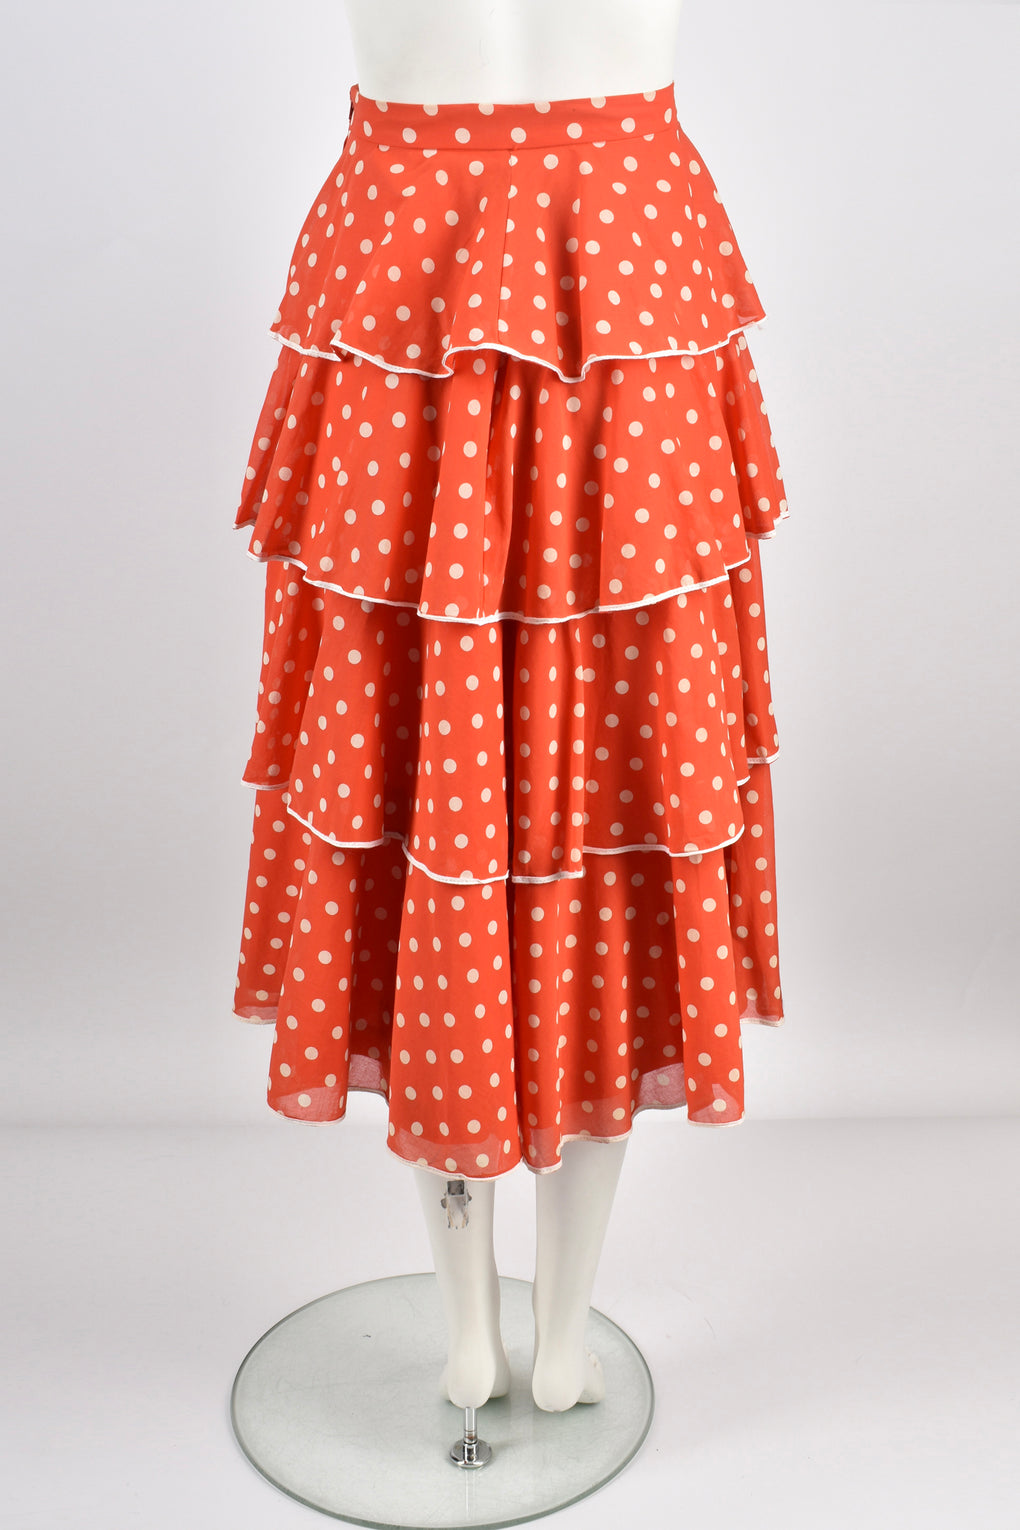 Louis Feraud 70s polka dot skirt  S-M